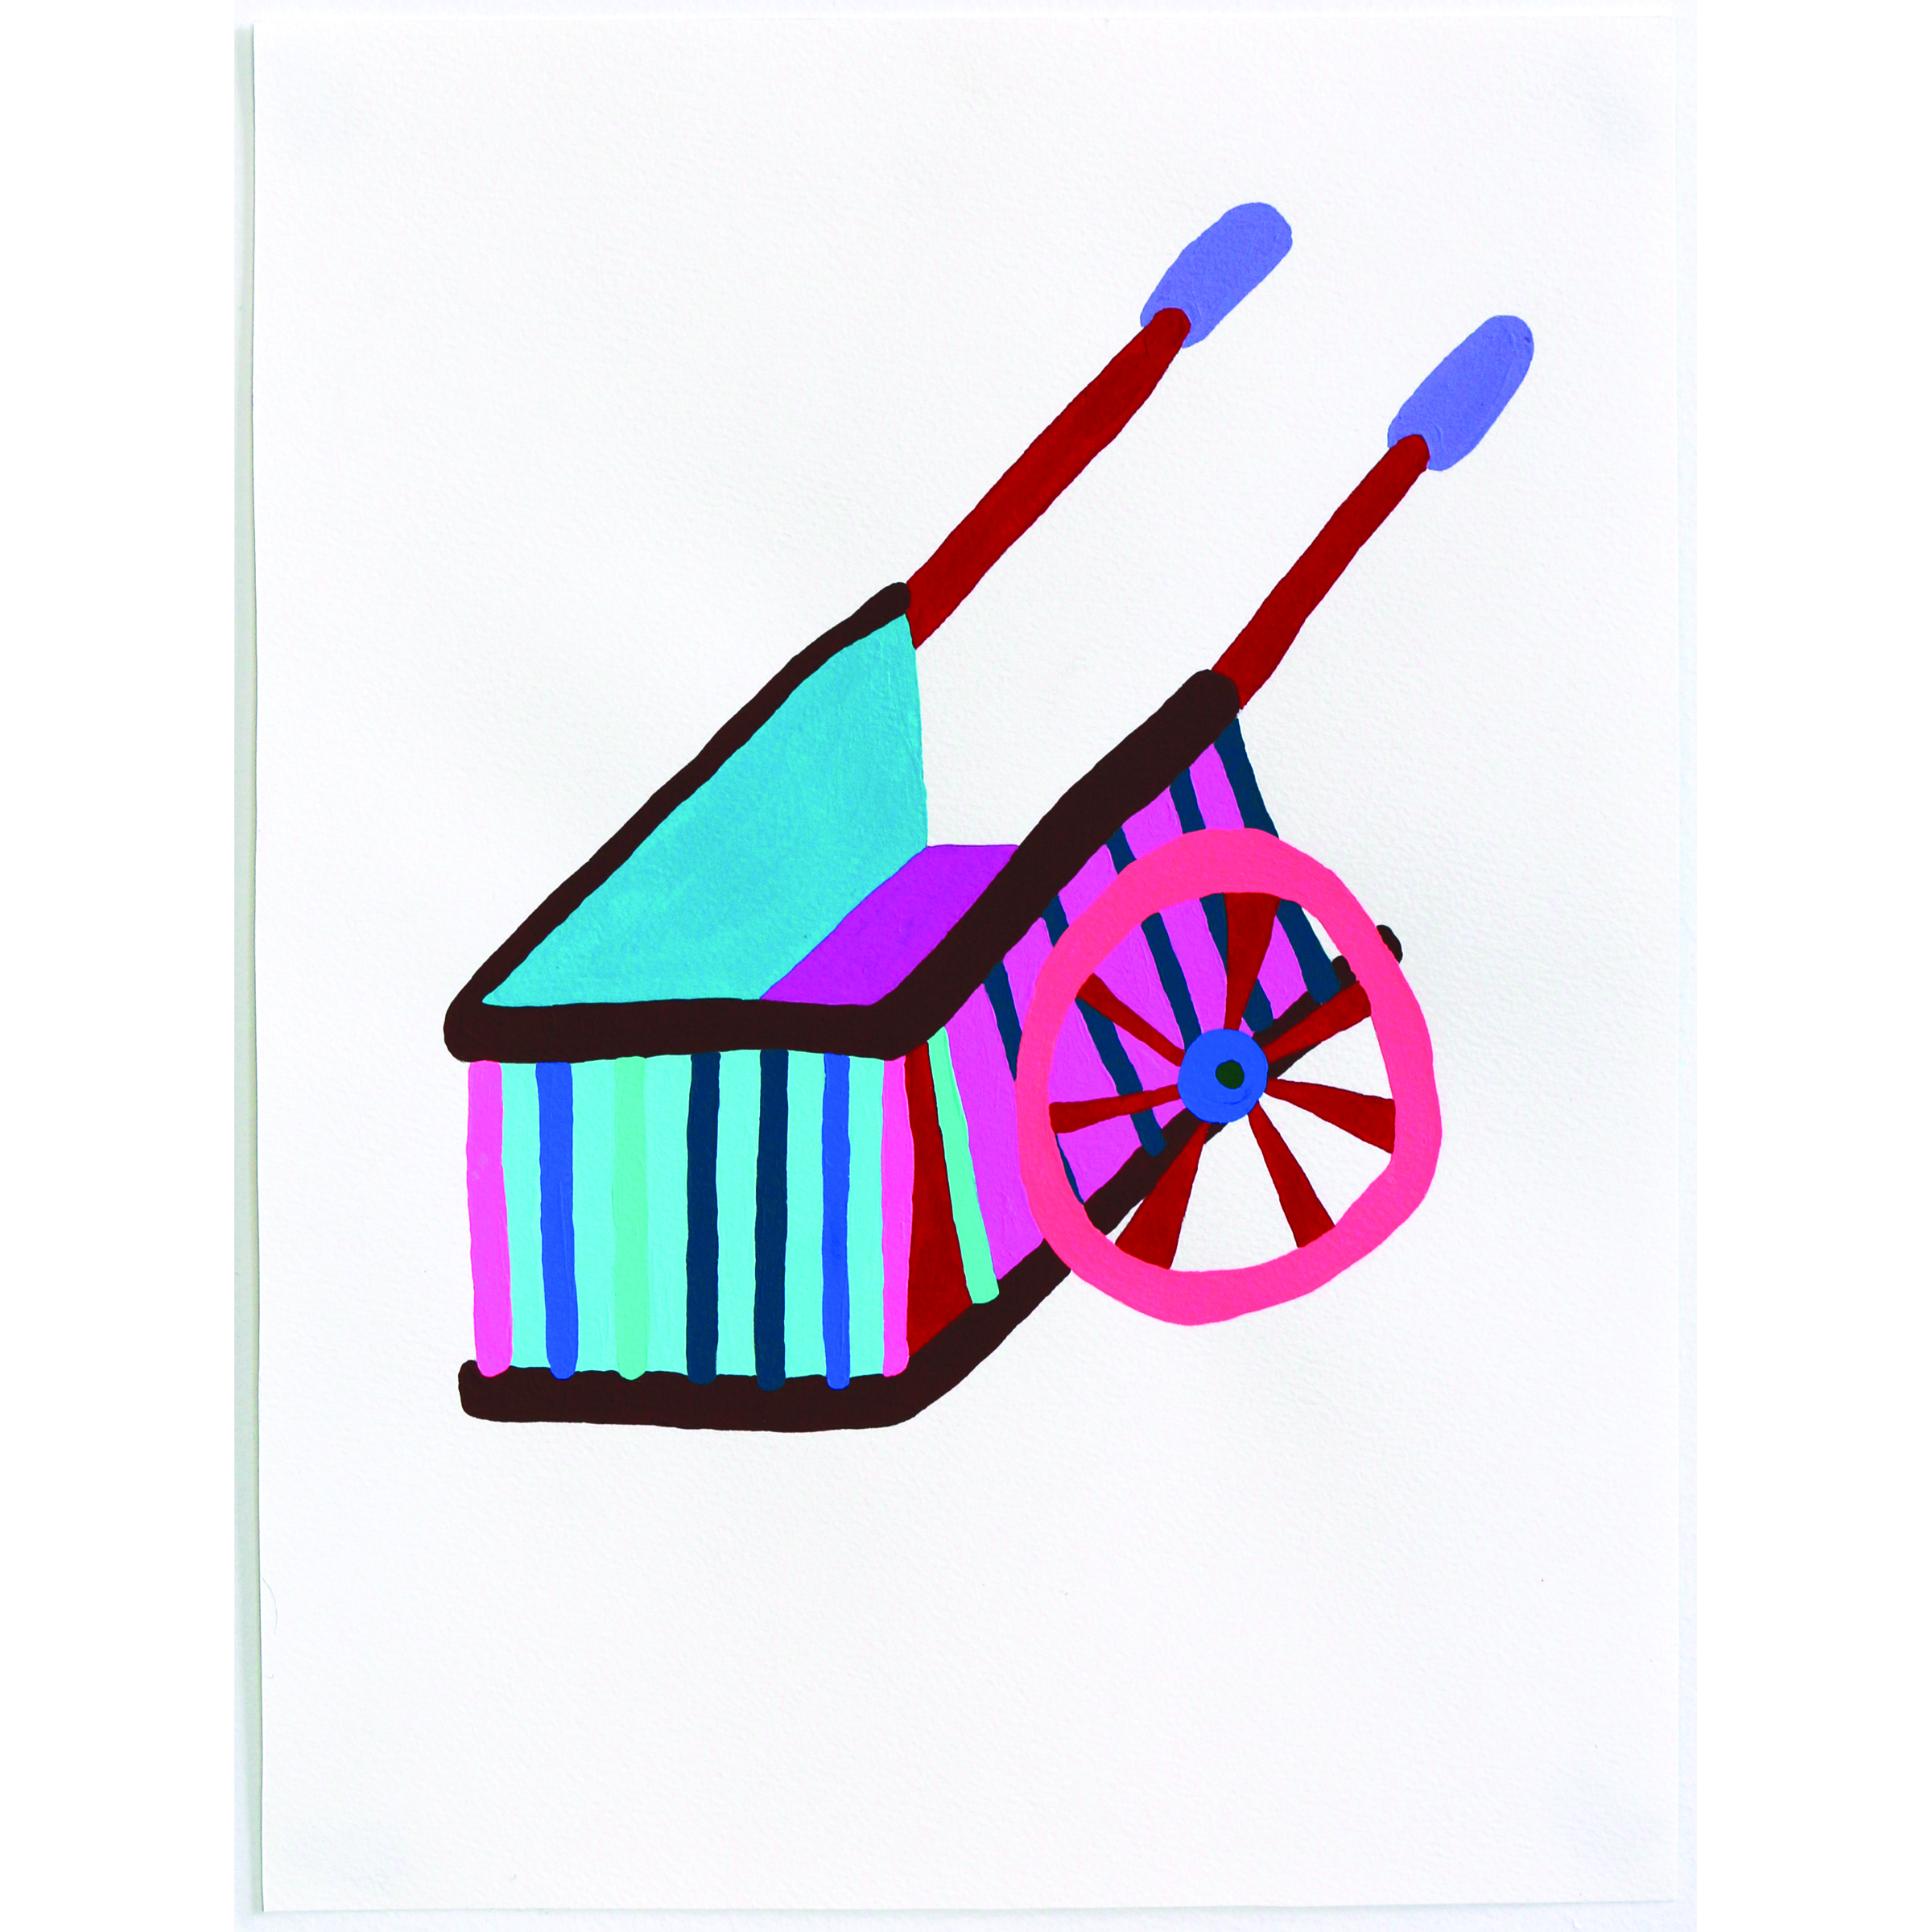 Witch Cart (Tool of Gallows)   11 x 14 inches, 2016